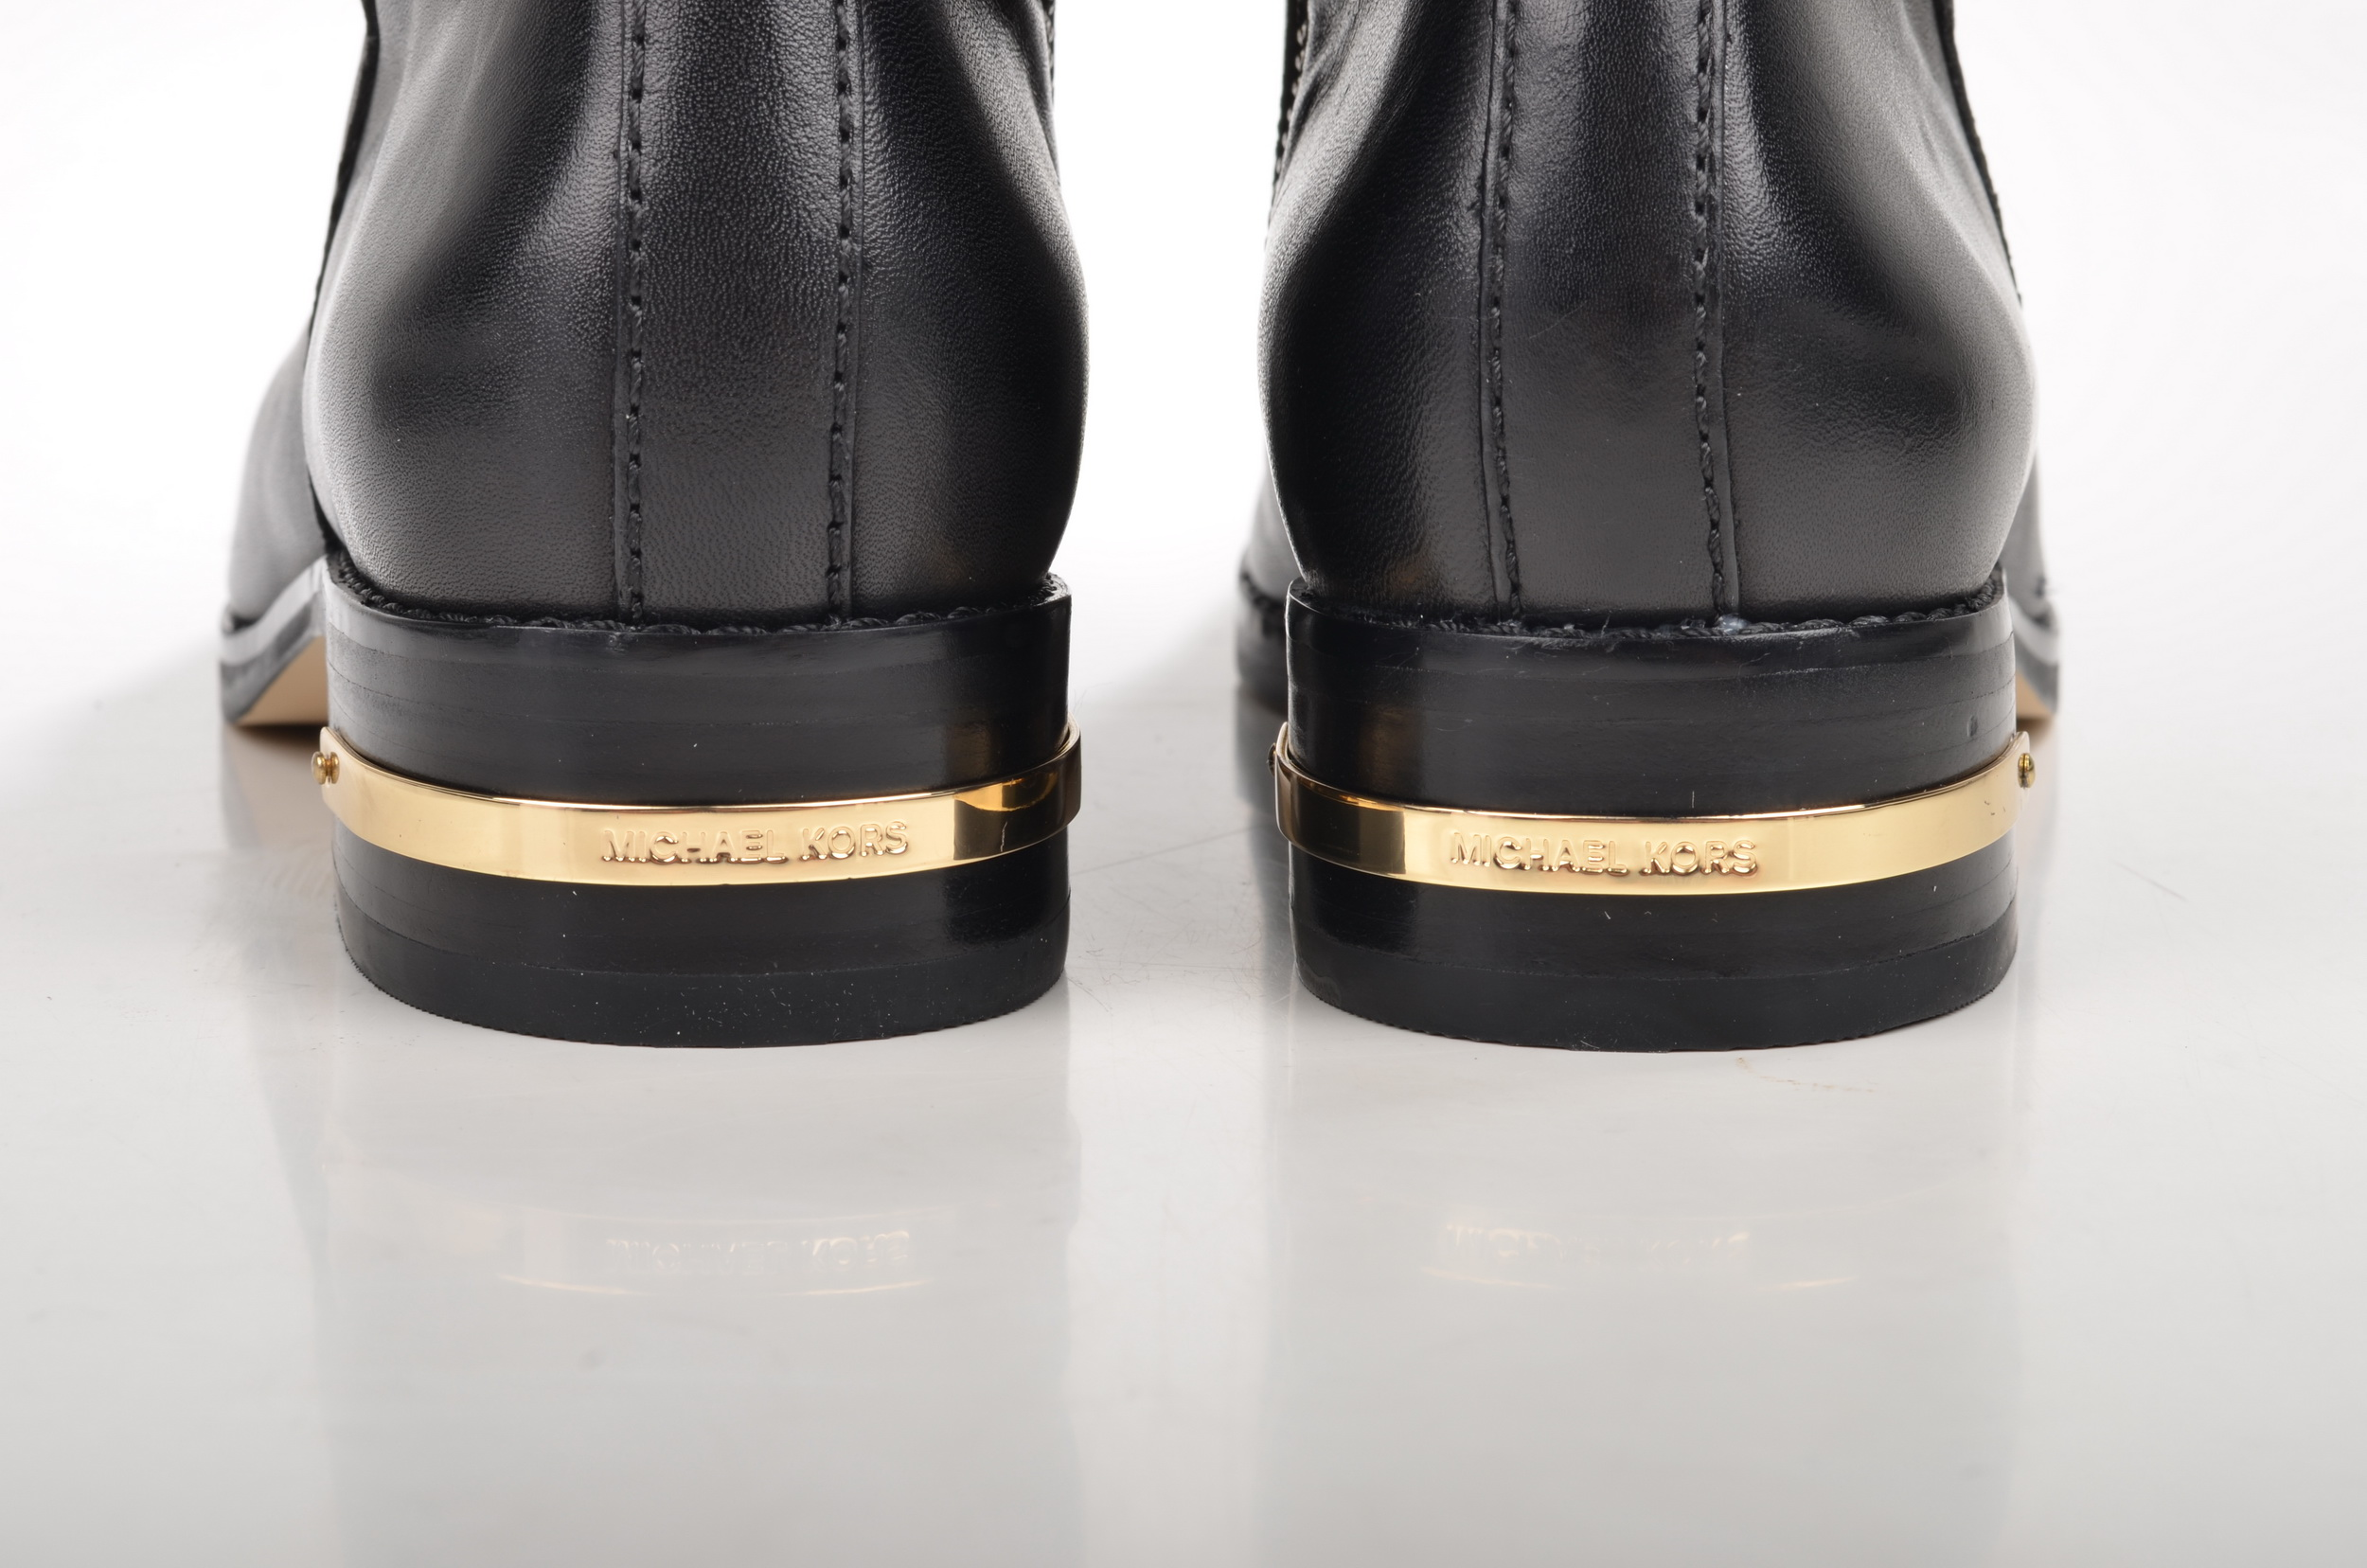 file michael kors aileen riding boot stiefel 40f4aimb7l kalbsleder schwarz 6 16648153822 jpg. Black Bedroom Furniture Sets. Home Design Ideas